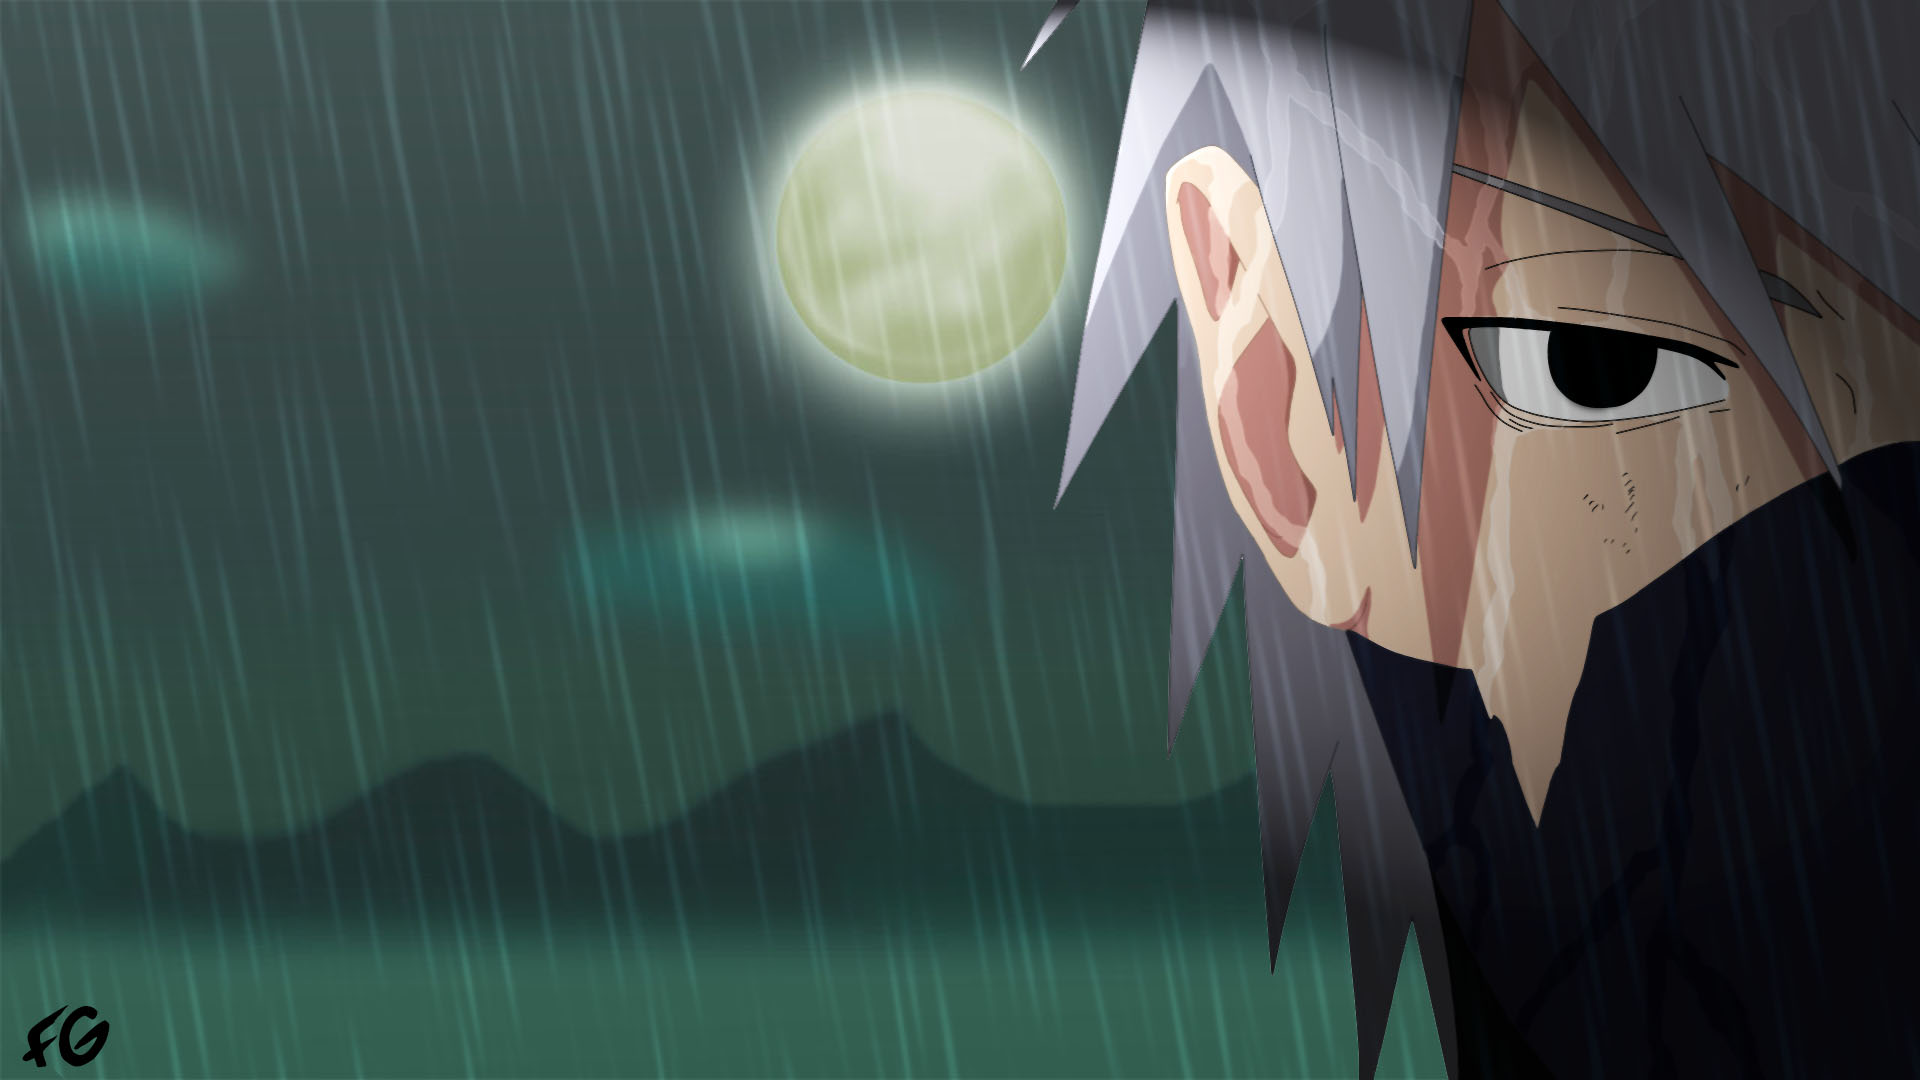 Kakashi hatake wallpapers wallpapersafari - Kakashi sensei wallpaper ...